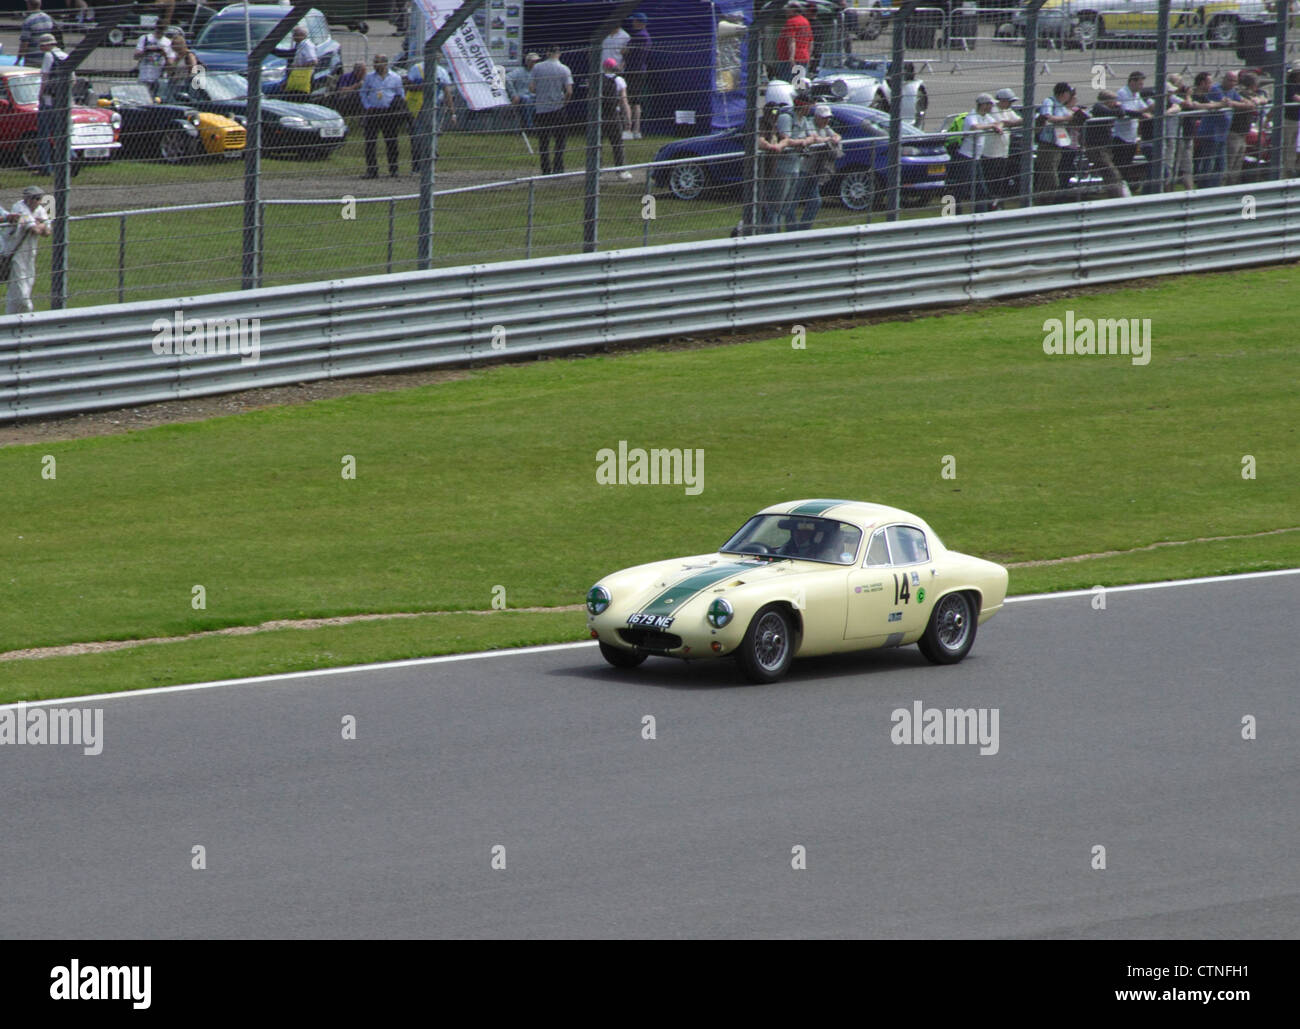 1961 Lotus Elite S2 at RAC Tourist Trophy for Historic Cars (pre-63 GT) Silverstone Classic July 22 2012 - Stock Image